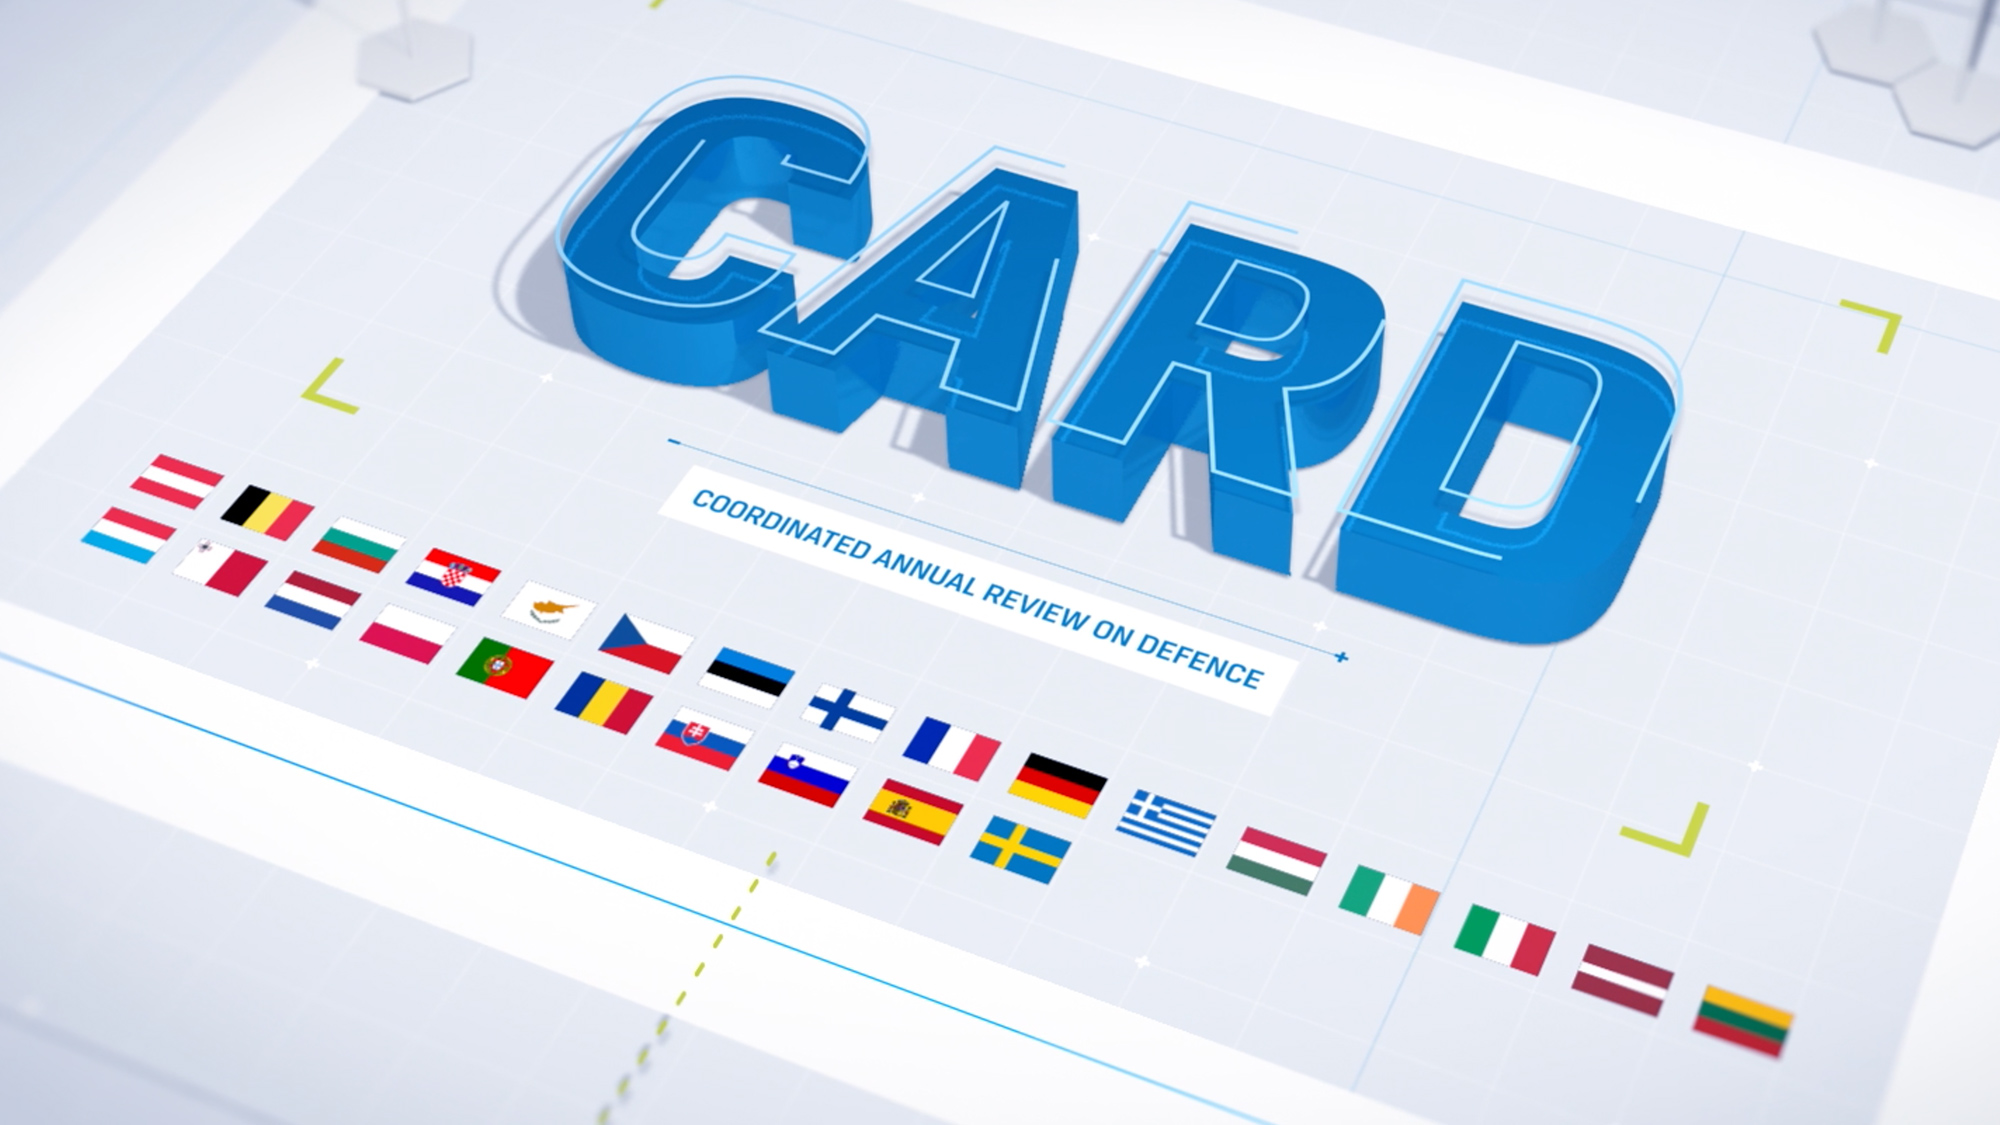 CARD implementation support discussed at high-level seminar